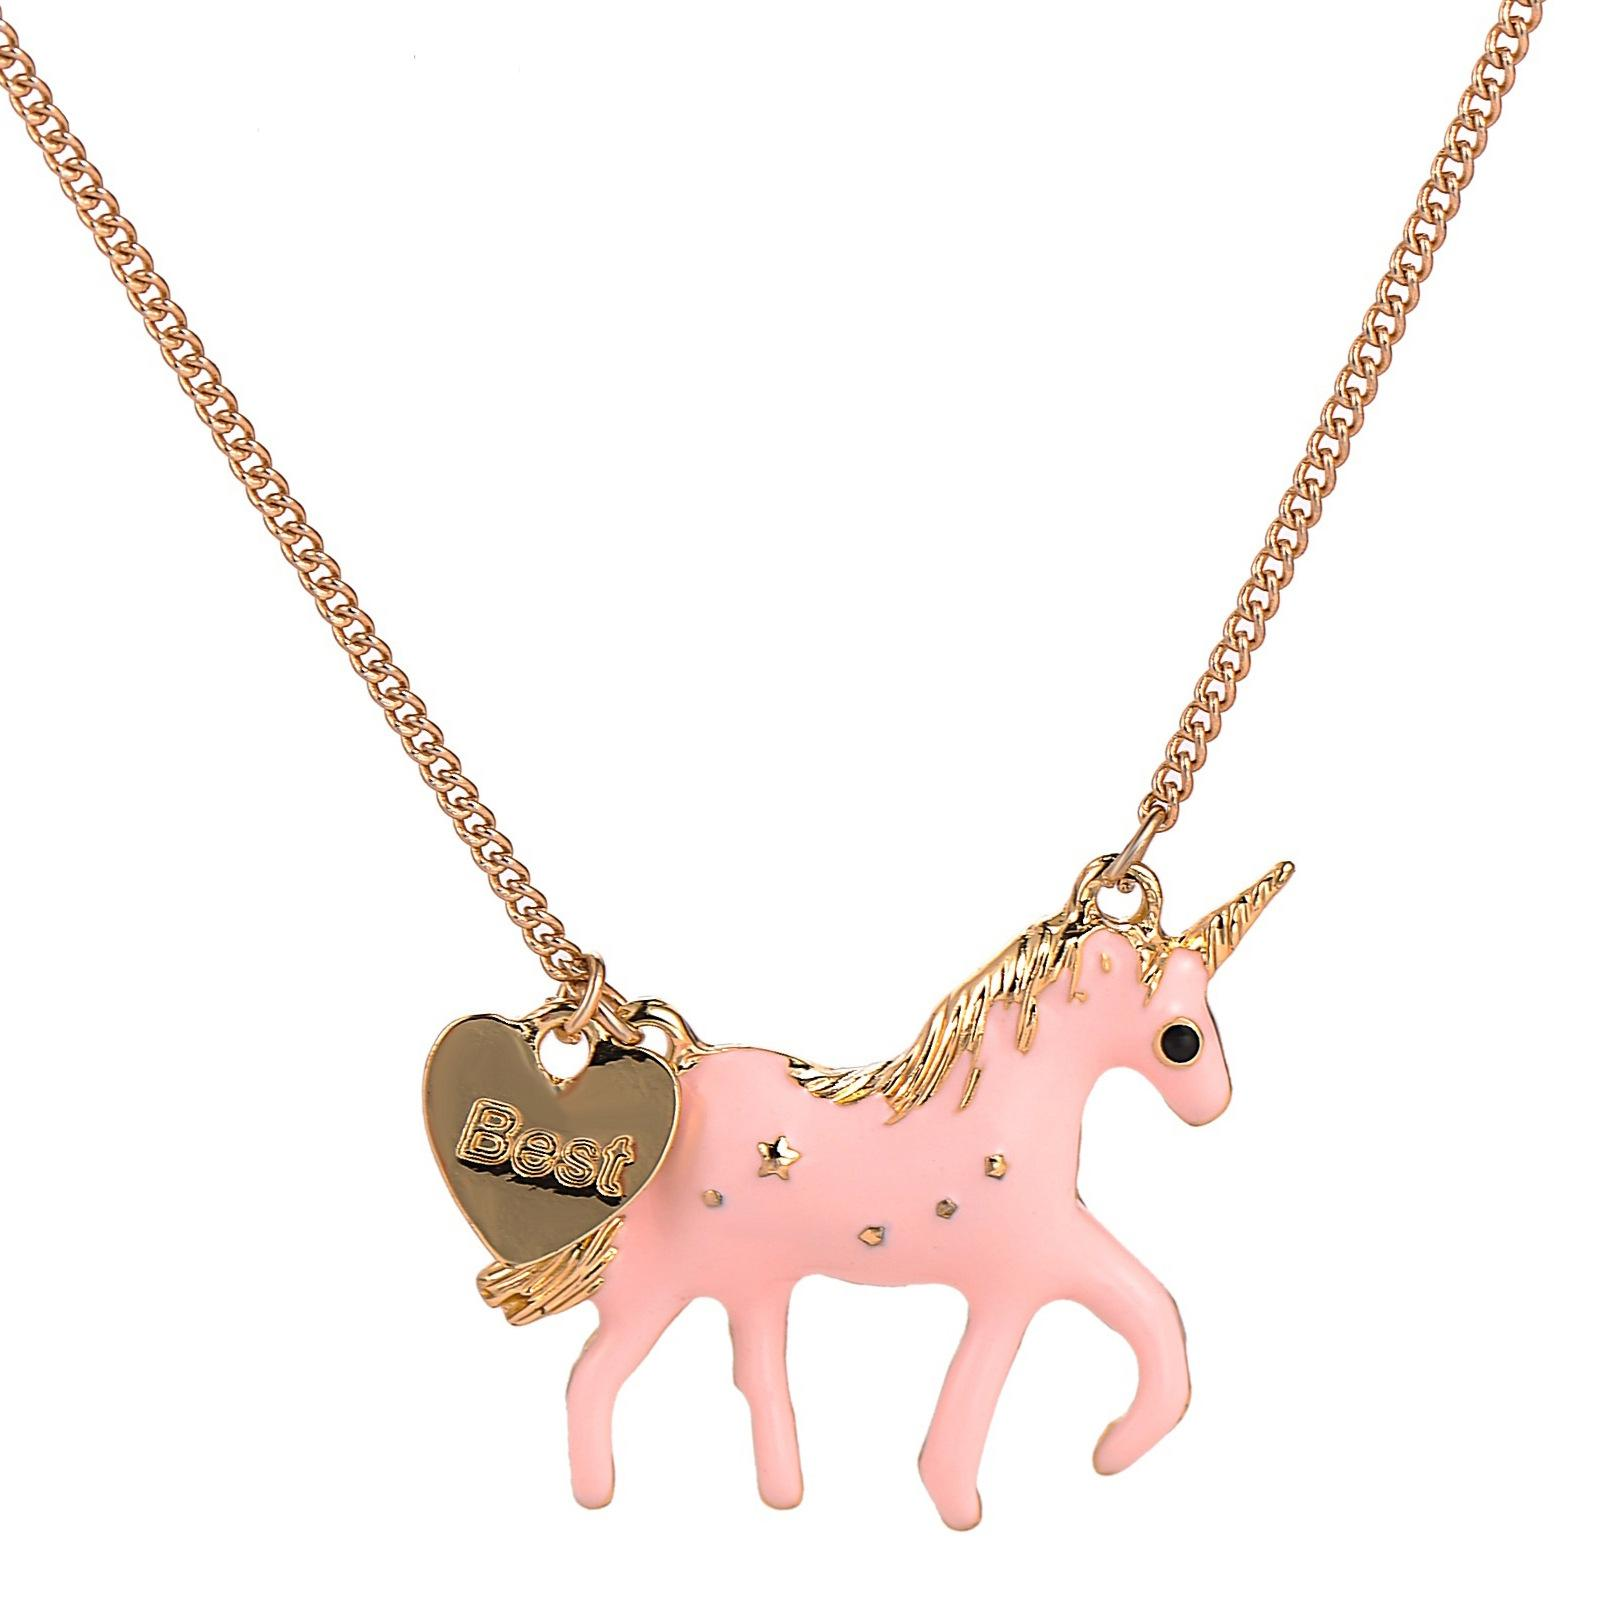 8d8f64f784867 Pink unicorn necklace girls women gift gold plated pendant unicorn pony  necklace fashion kids jewelry NNA550